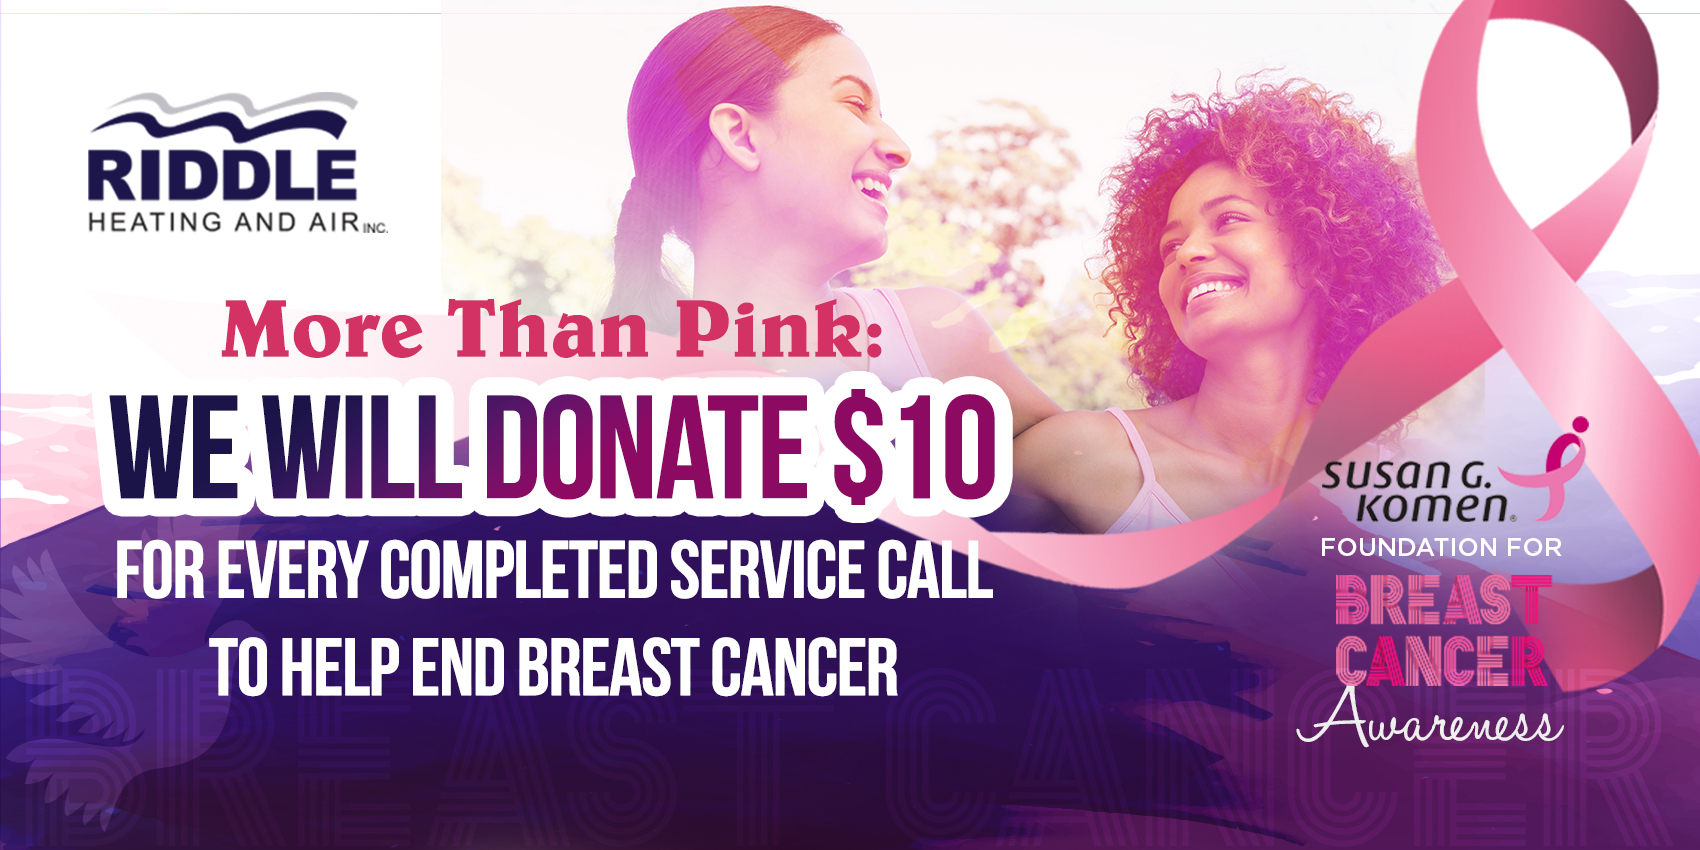 More Than Pink: We Will Donate $10 For Every Completed Service Call To Help End Breast Cancer